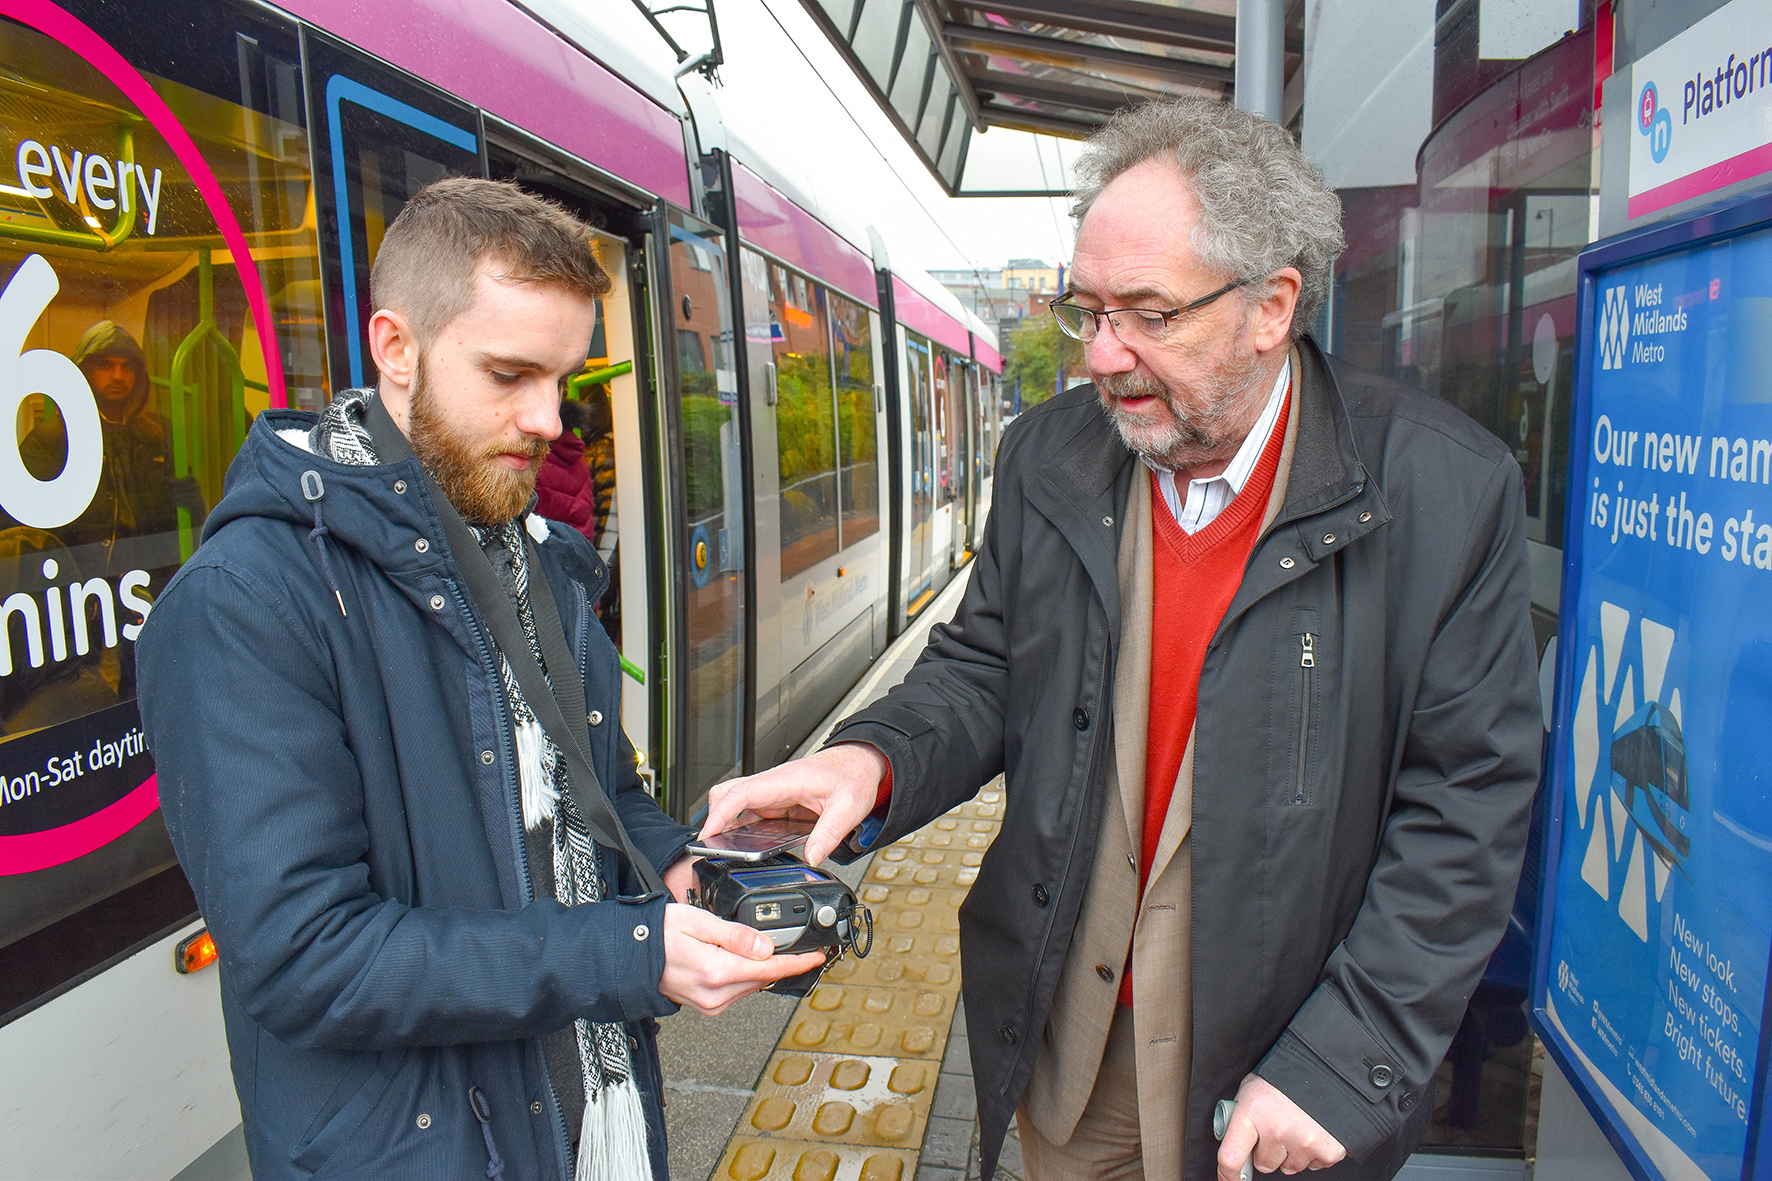 West Midlands Metro tap and go mobile ticketing launches with discount offer